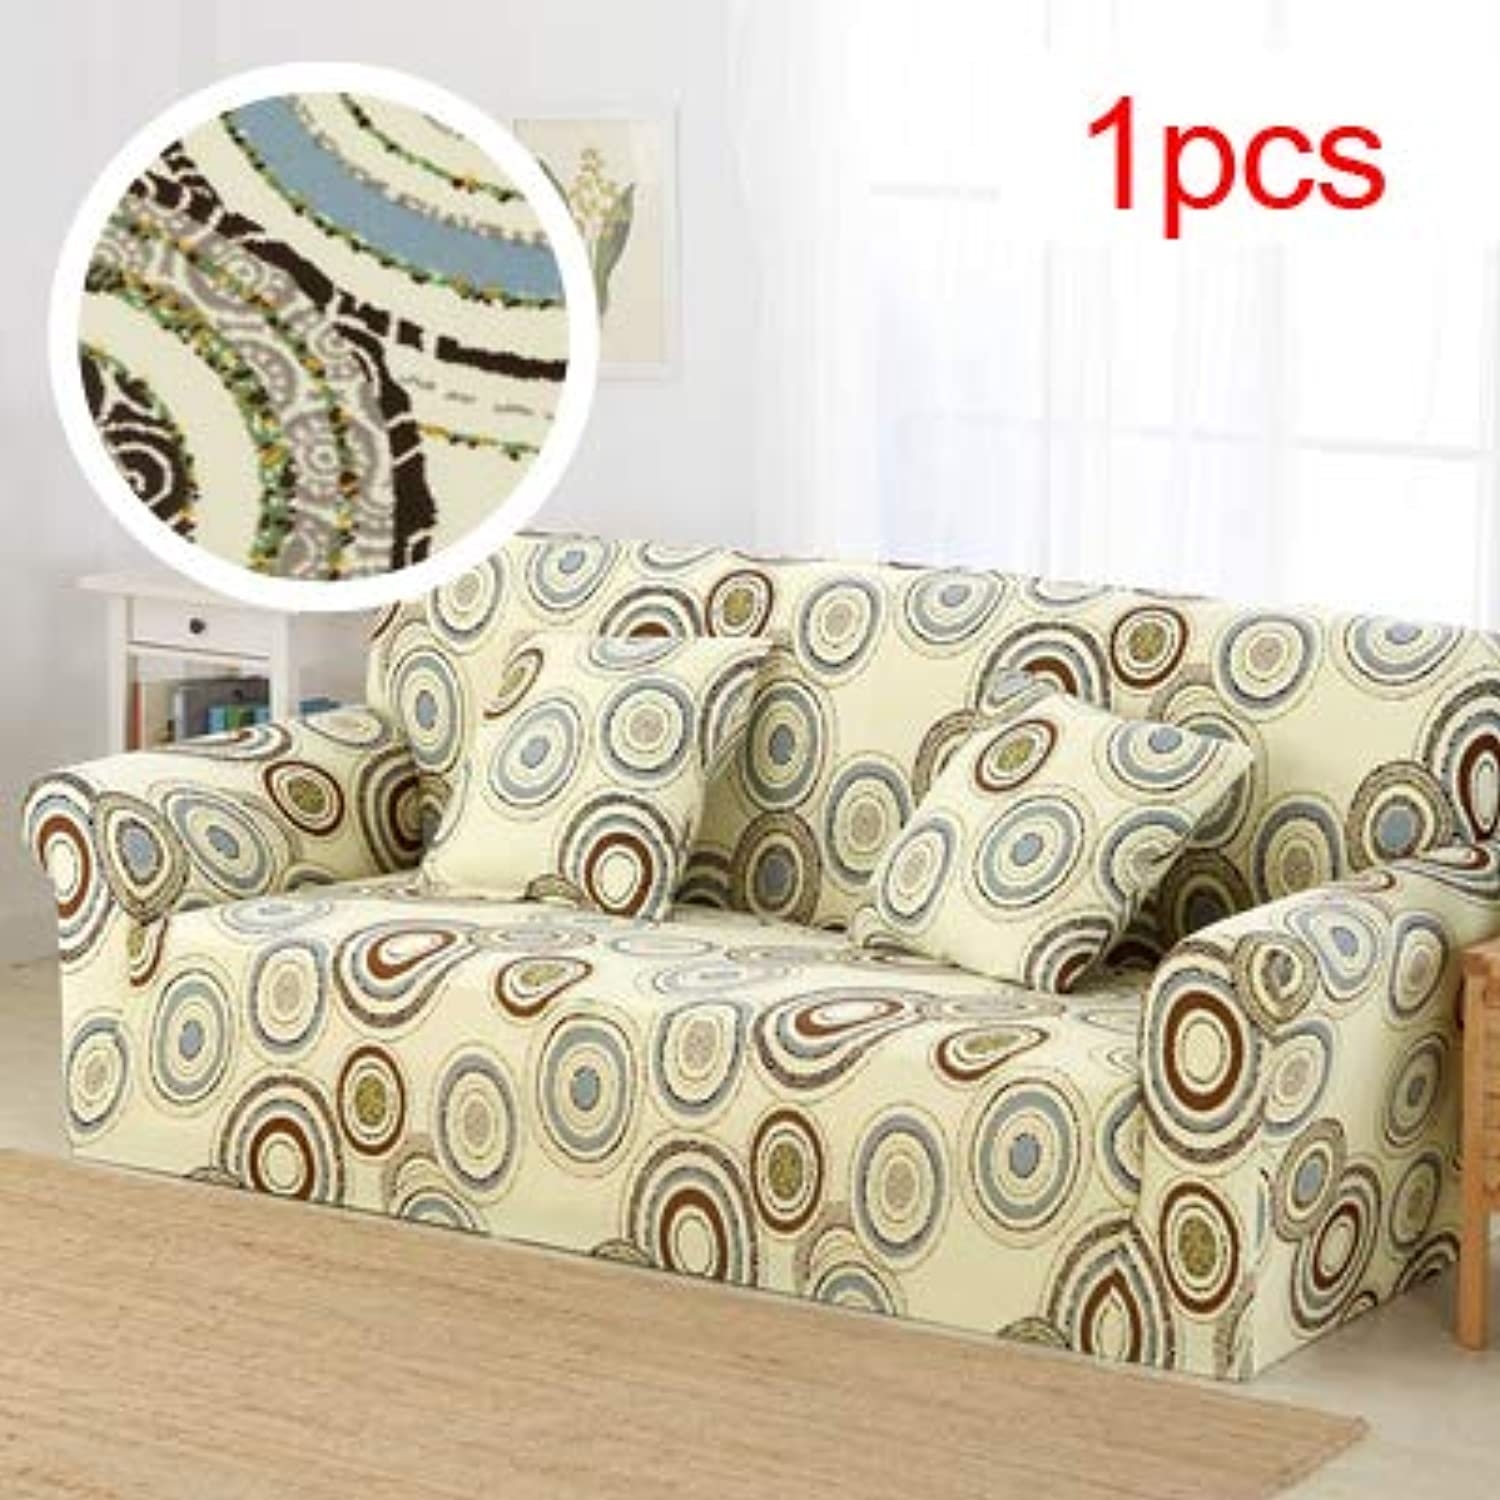 Elastic Sofa Cover Printed Flowers Slipcover Tight Wrap All-Inclusive Corner Sofa Cover Stretch Furniture Covers 1 2 3 4 Seater   10, Single seat Sofa